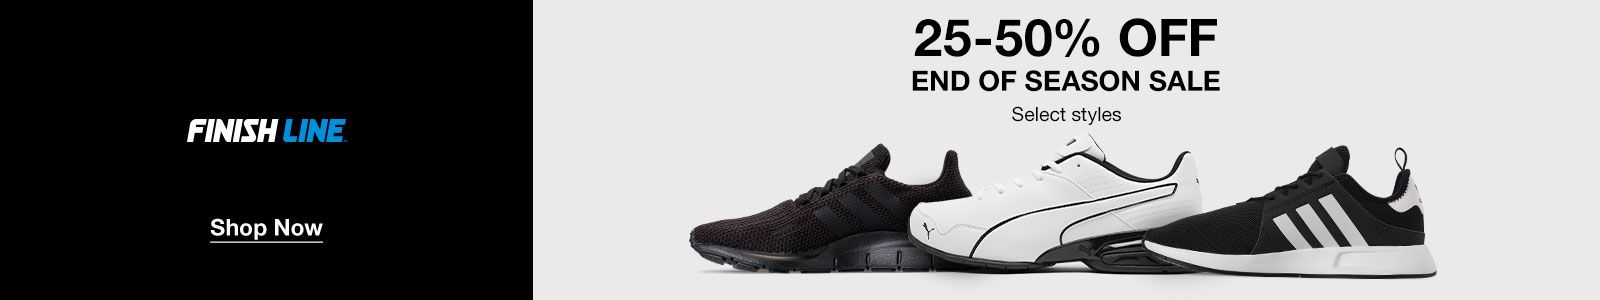 Finish Line, Shop Now, 25-50% off, End of Season Sale, Select styles